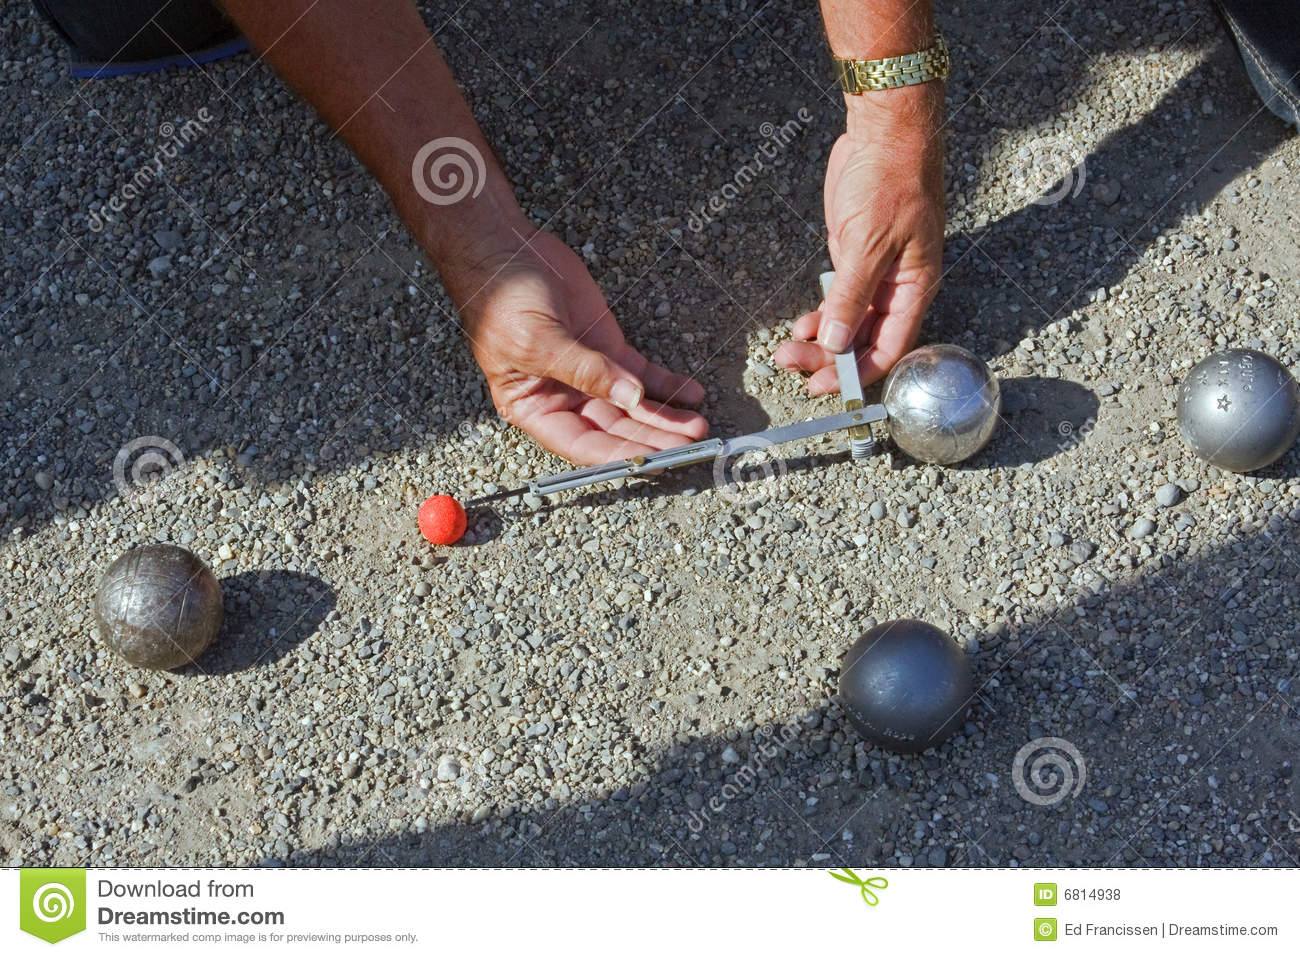 Jeu de boules or petanque royalty free stock photos for Reglement jeu de petanque